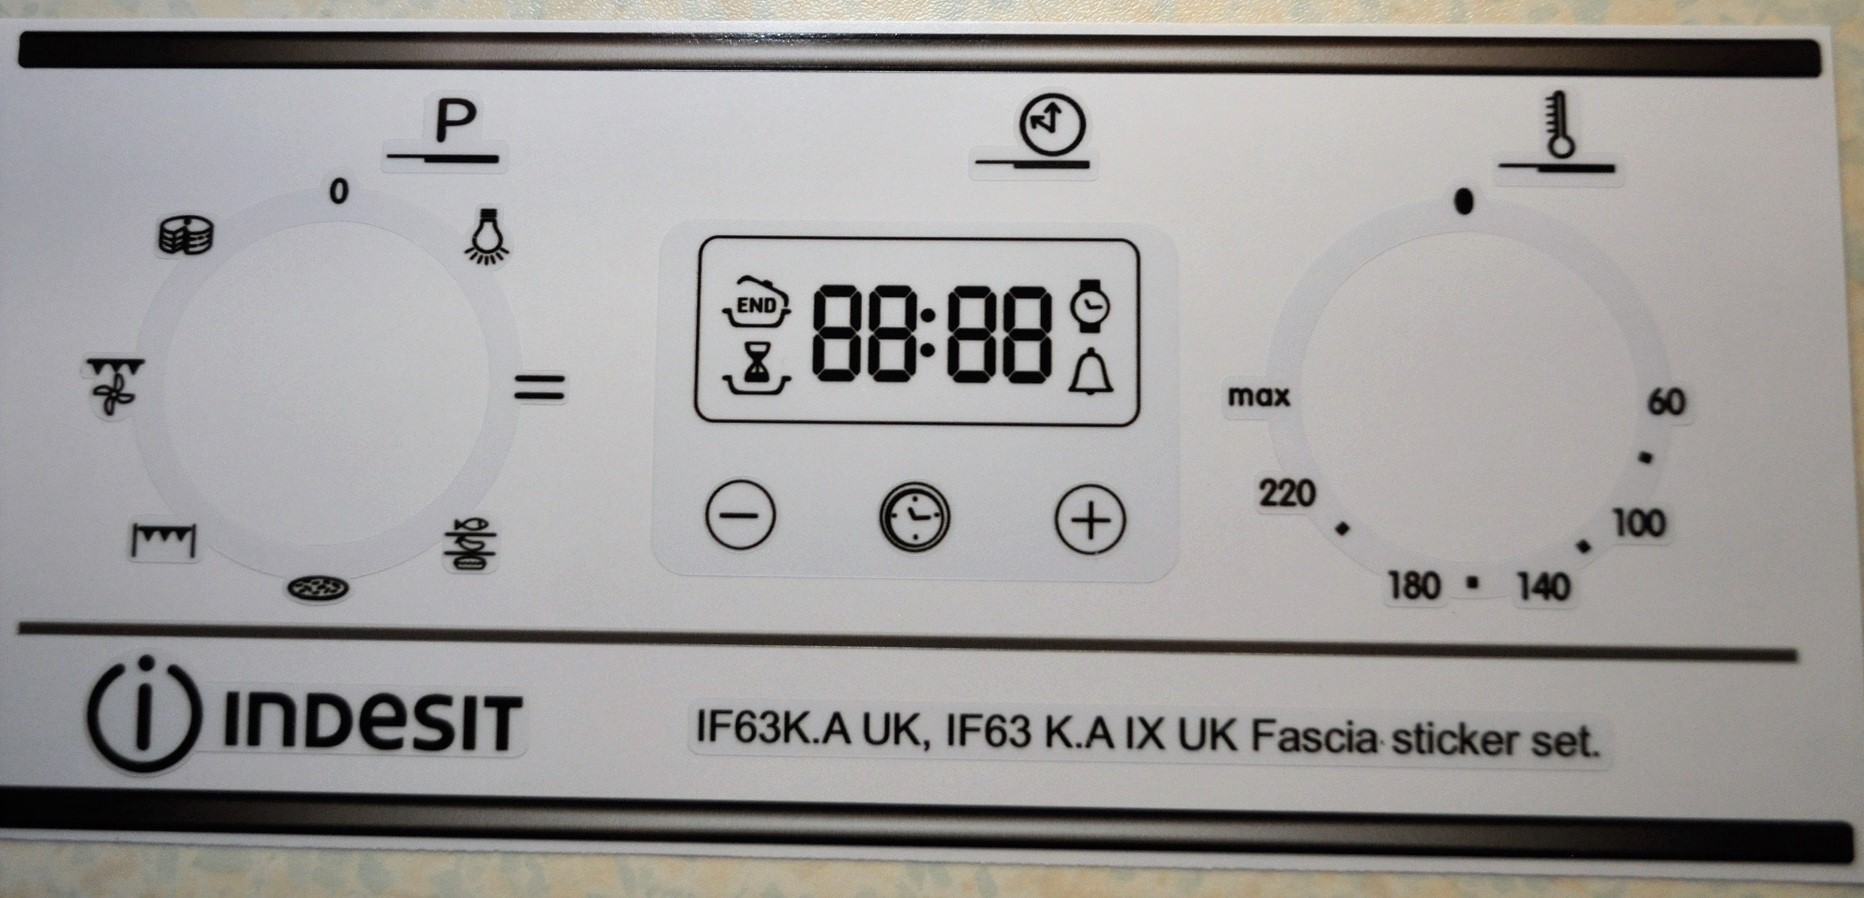 Indesit IF63K.A.UK fascia decal sticker set.